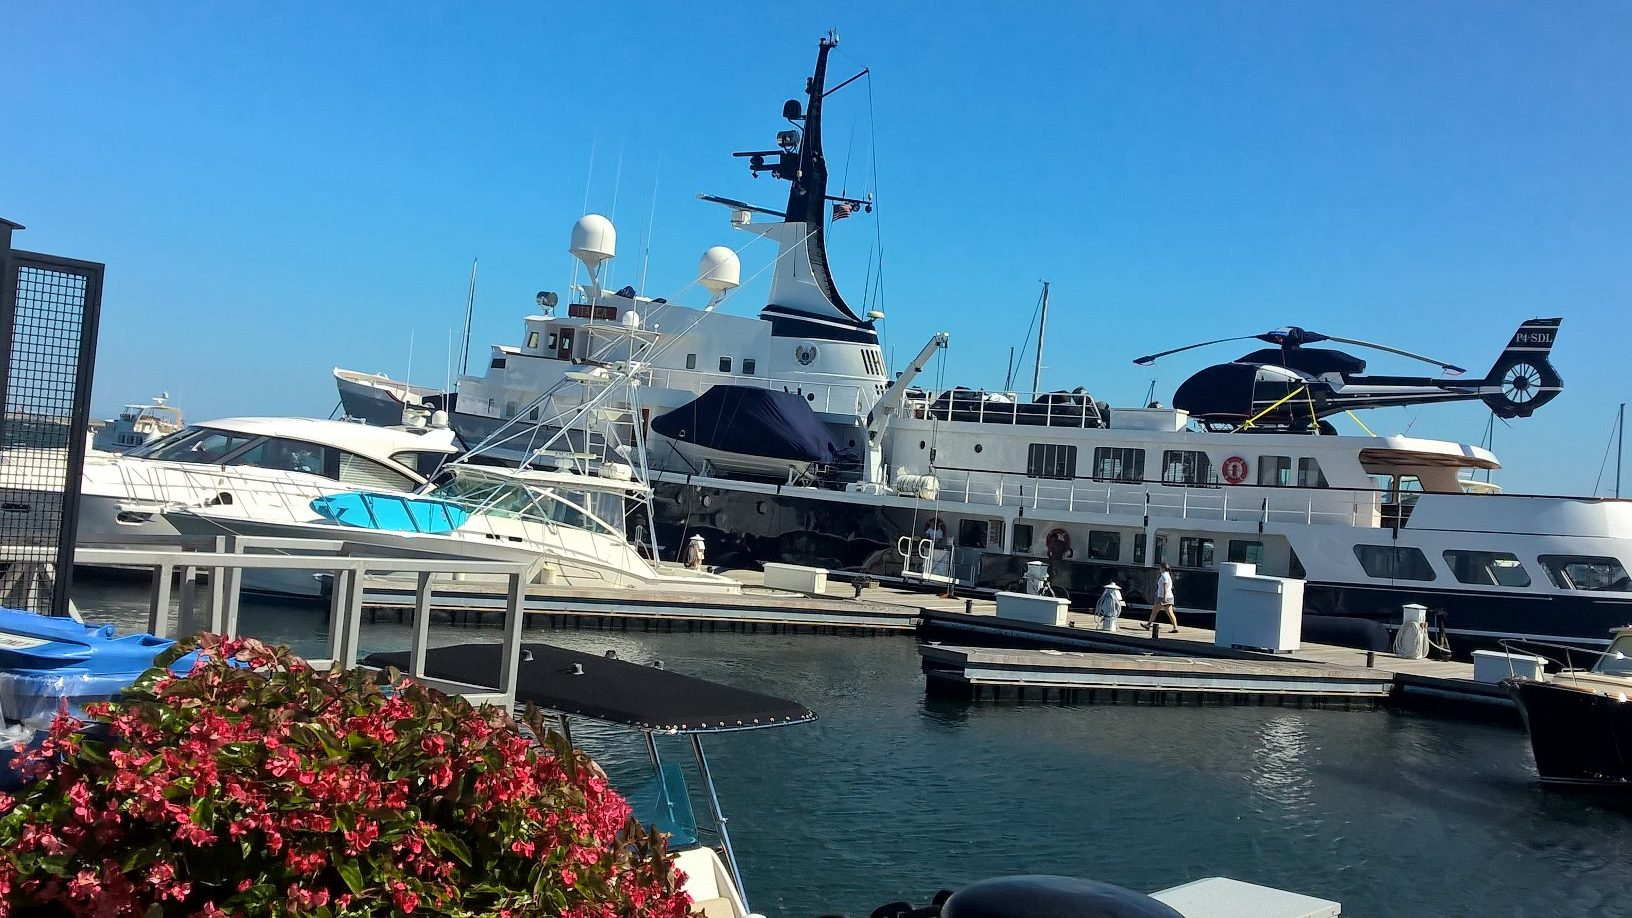 Looking for a boat? Check out the Itasca, docked at Yacht Haven (Photo by Monika Skole).